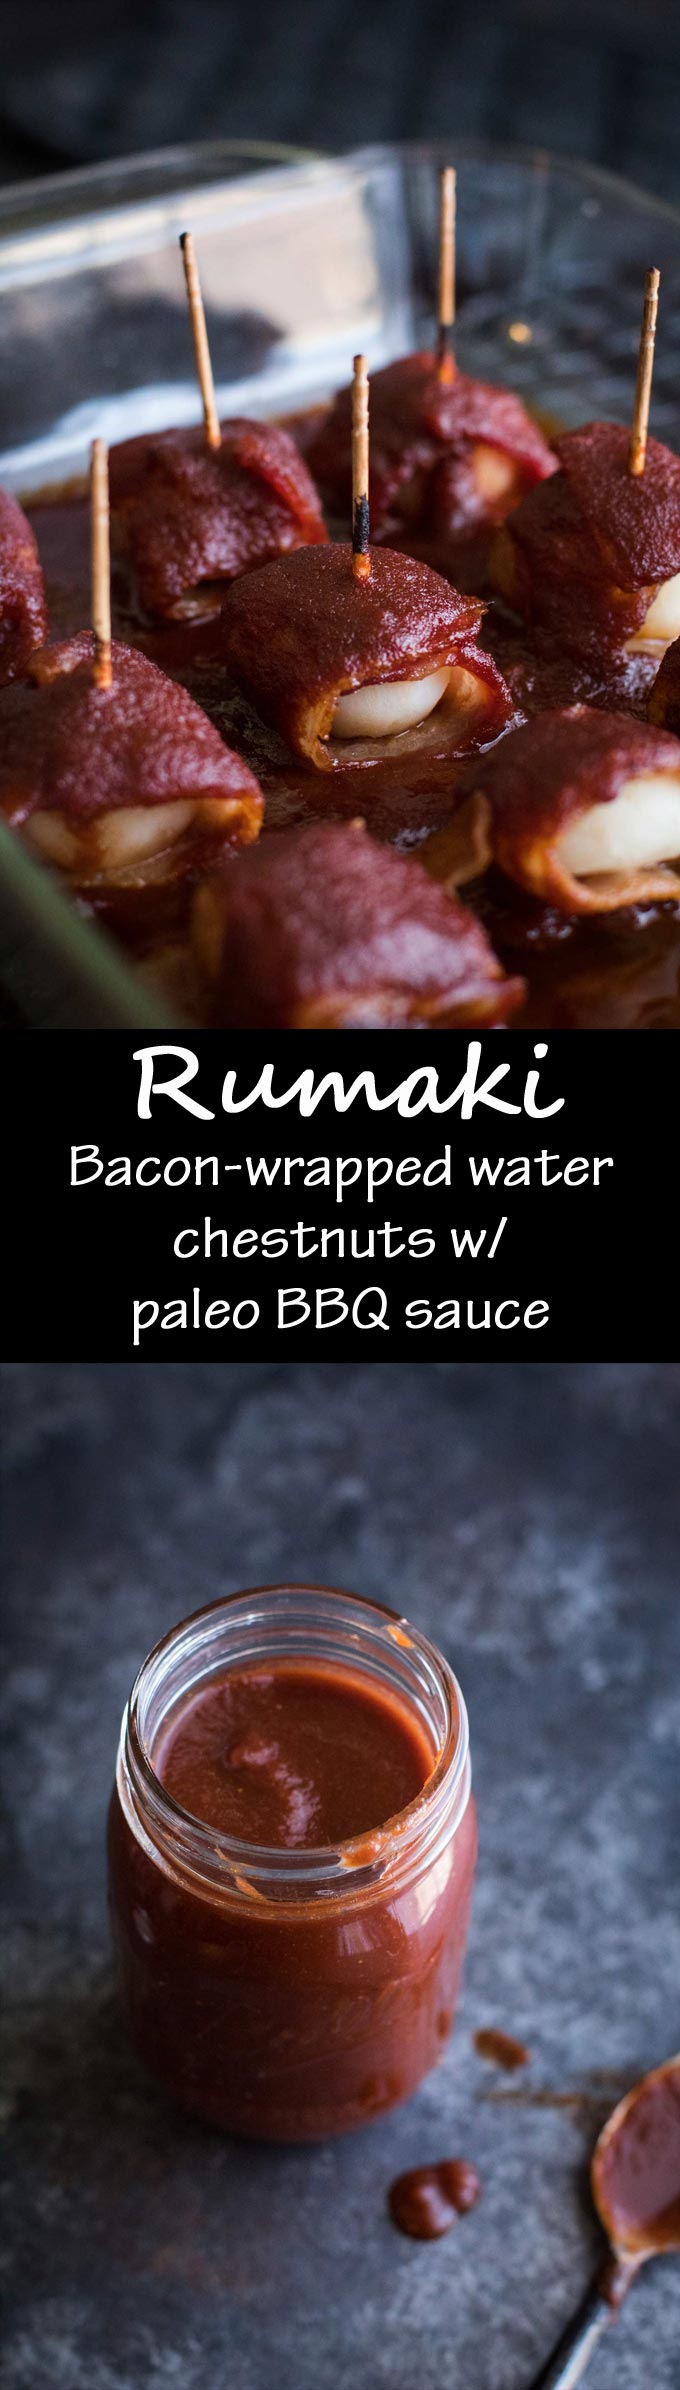 Rumaki - Bacon wrapped water chestnuts with BBQ sauce | Paleo | Gluten-free | Unrefined Foodie | Appetizers | Dairy-free